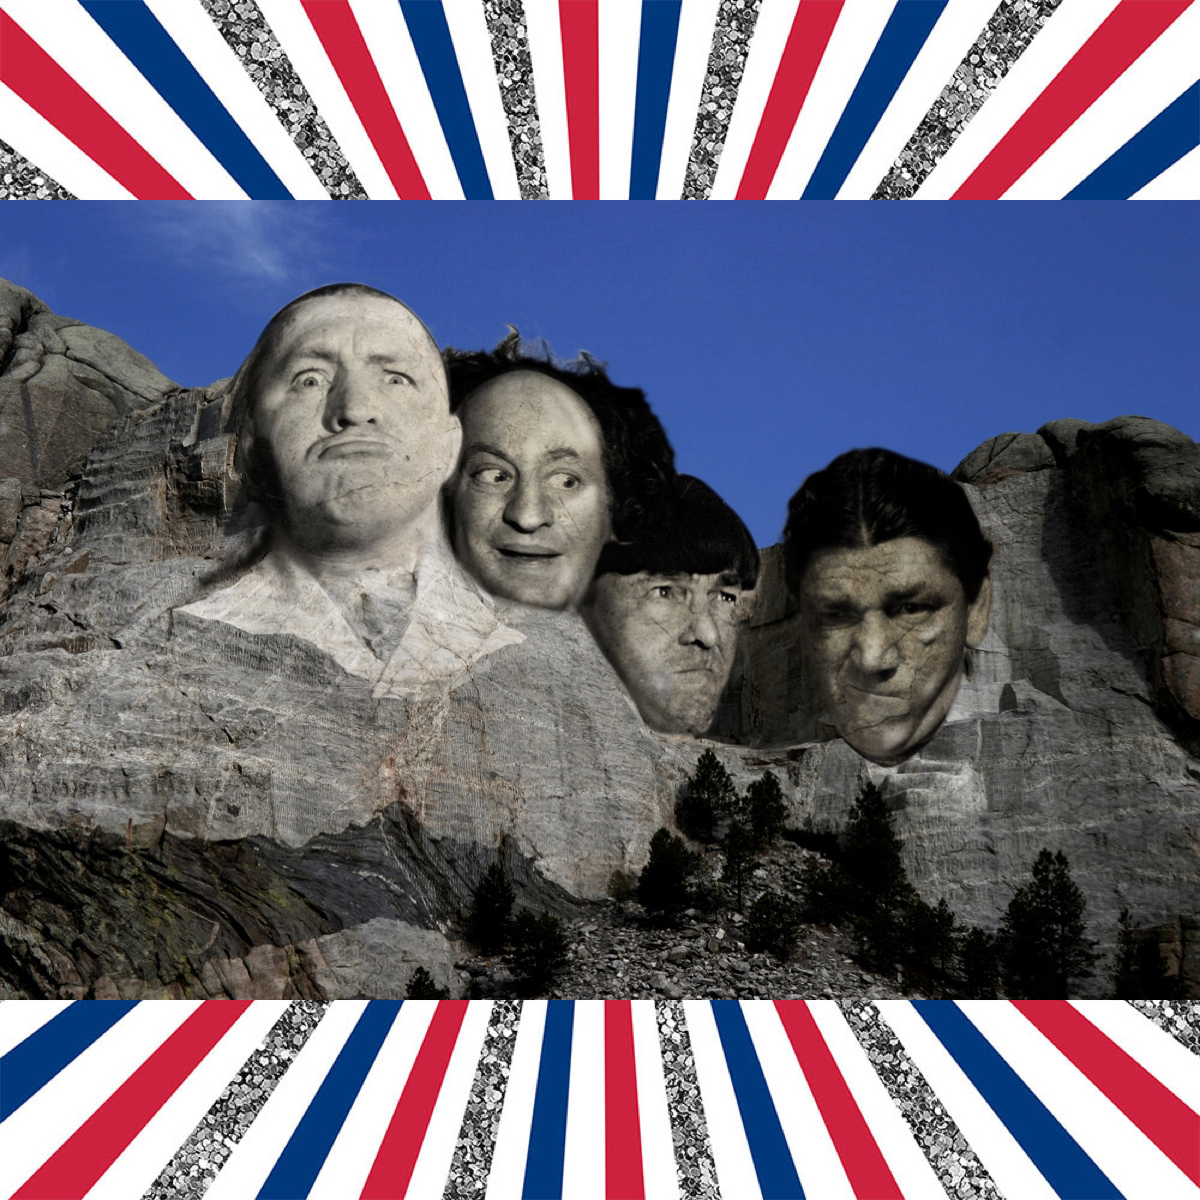 Mount Rushmore Was Formally Dedicated Today In 1927 We Decided It Was Time For A Facelift Nyuk Nyuk Nyuk T The Three Stooges Short Subject Funny Pictures